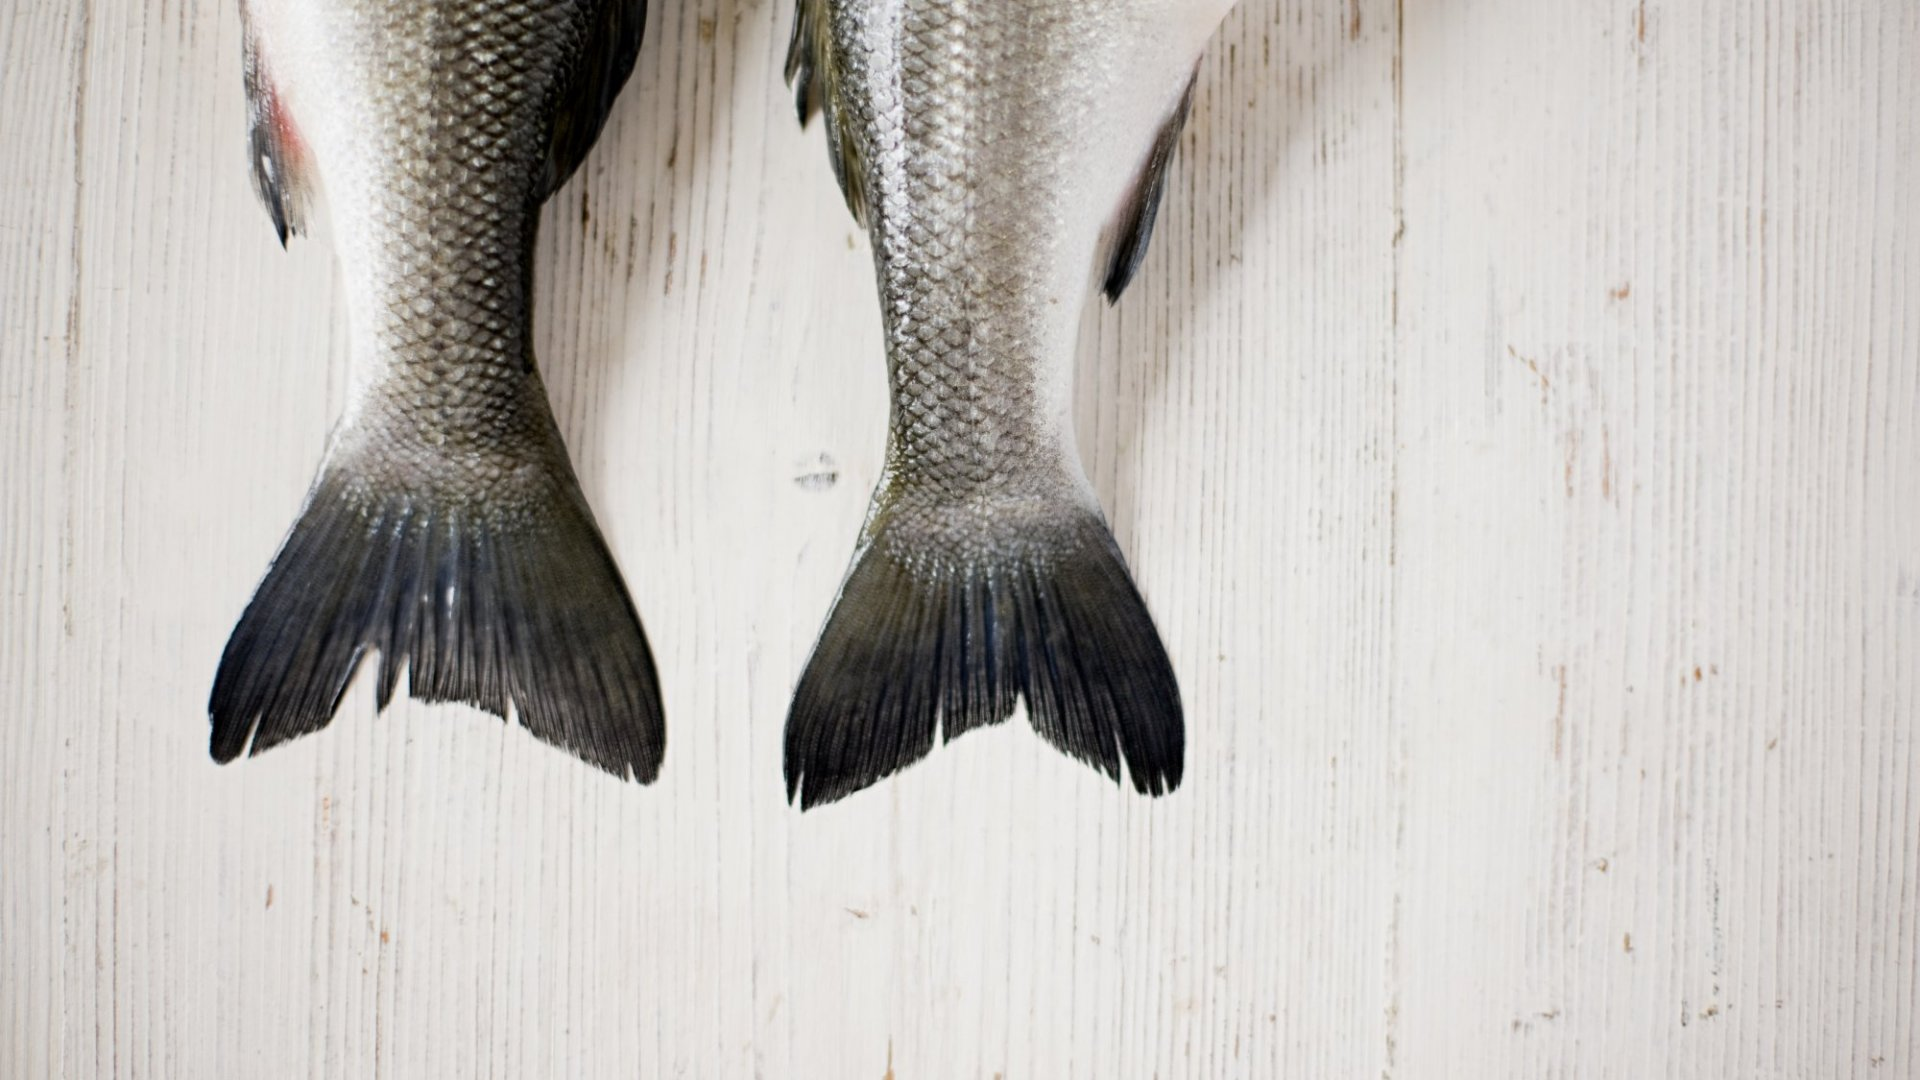 How Fishpeople is Making Seafood More Transparent